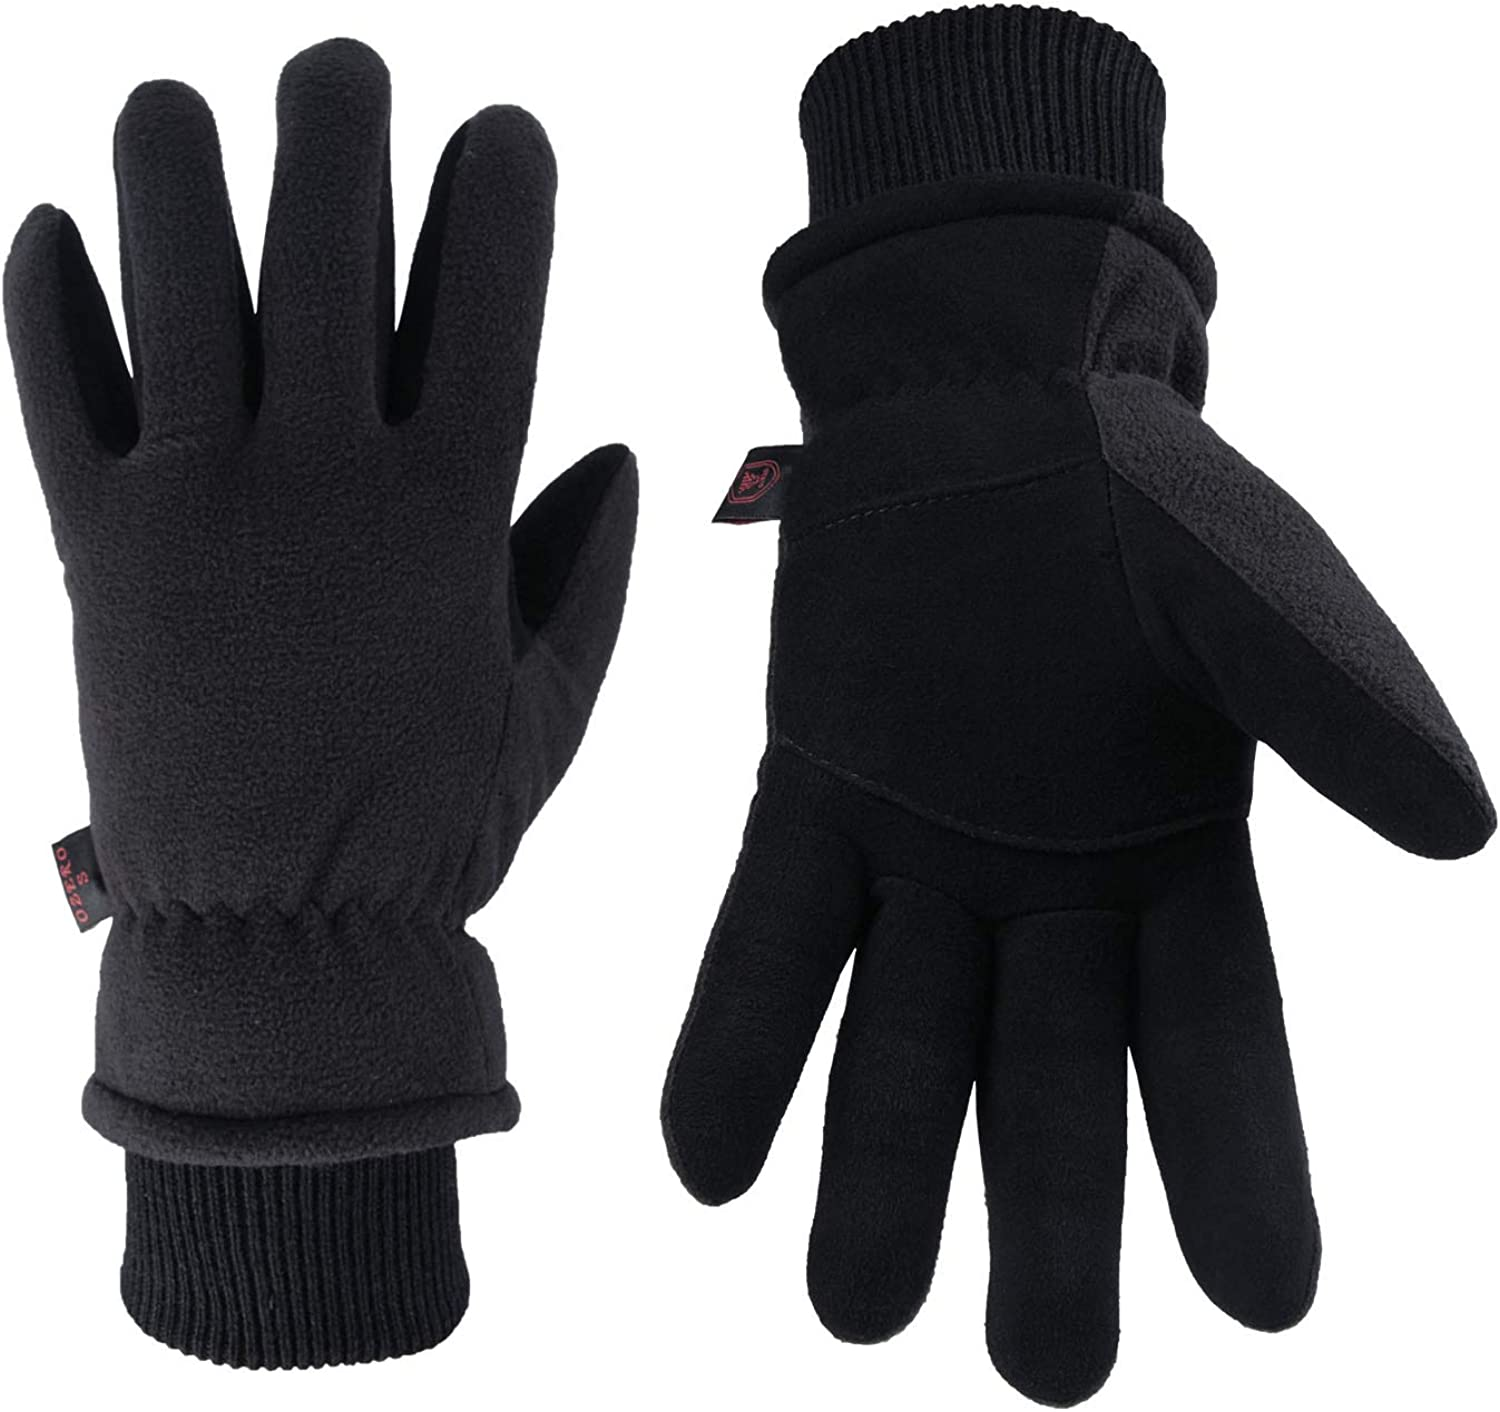 OZERO Winter Gloves Deerskin Leather Windproof Insulated Work Gifts for Men and Women